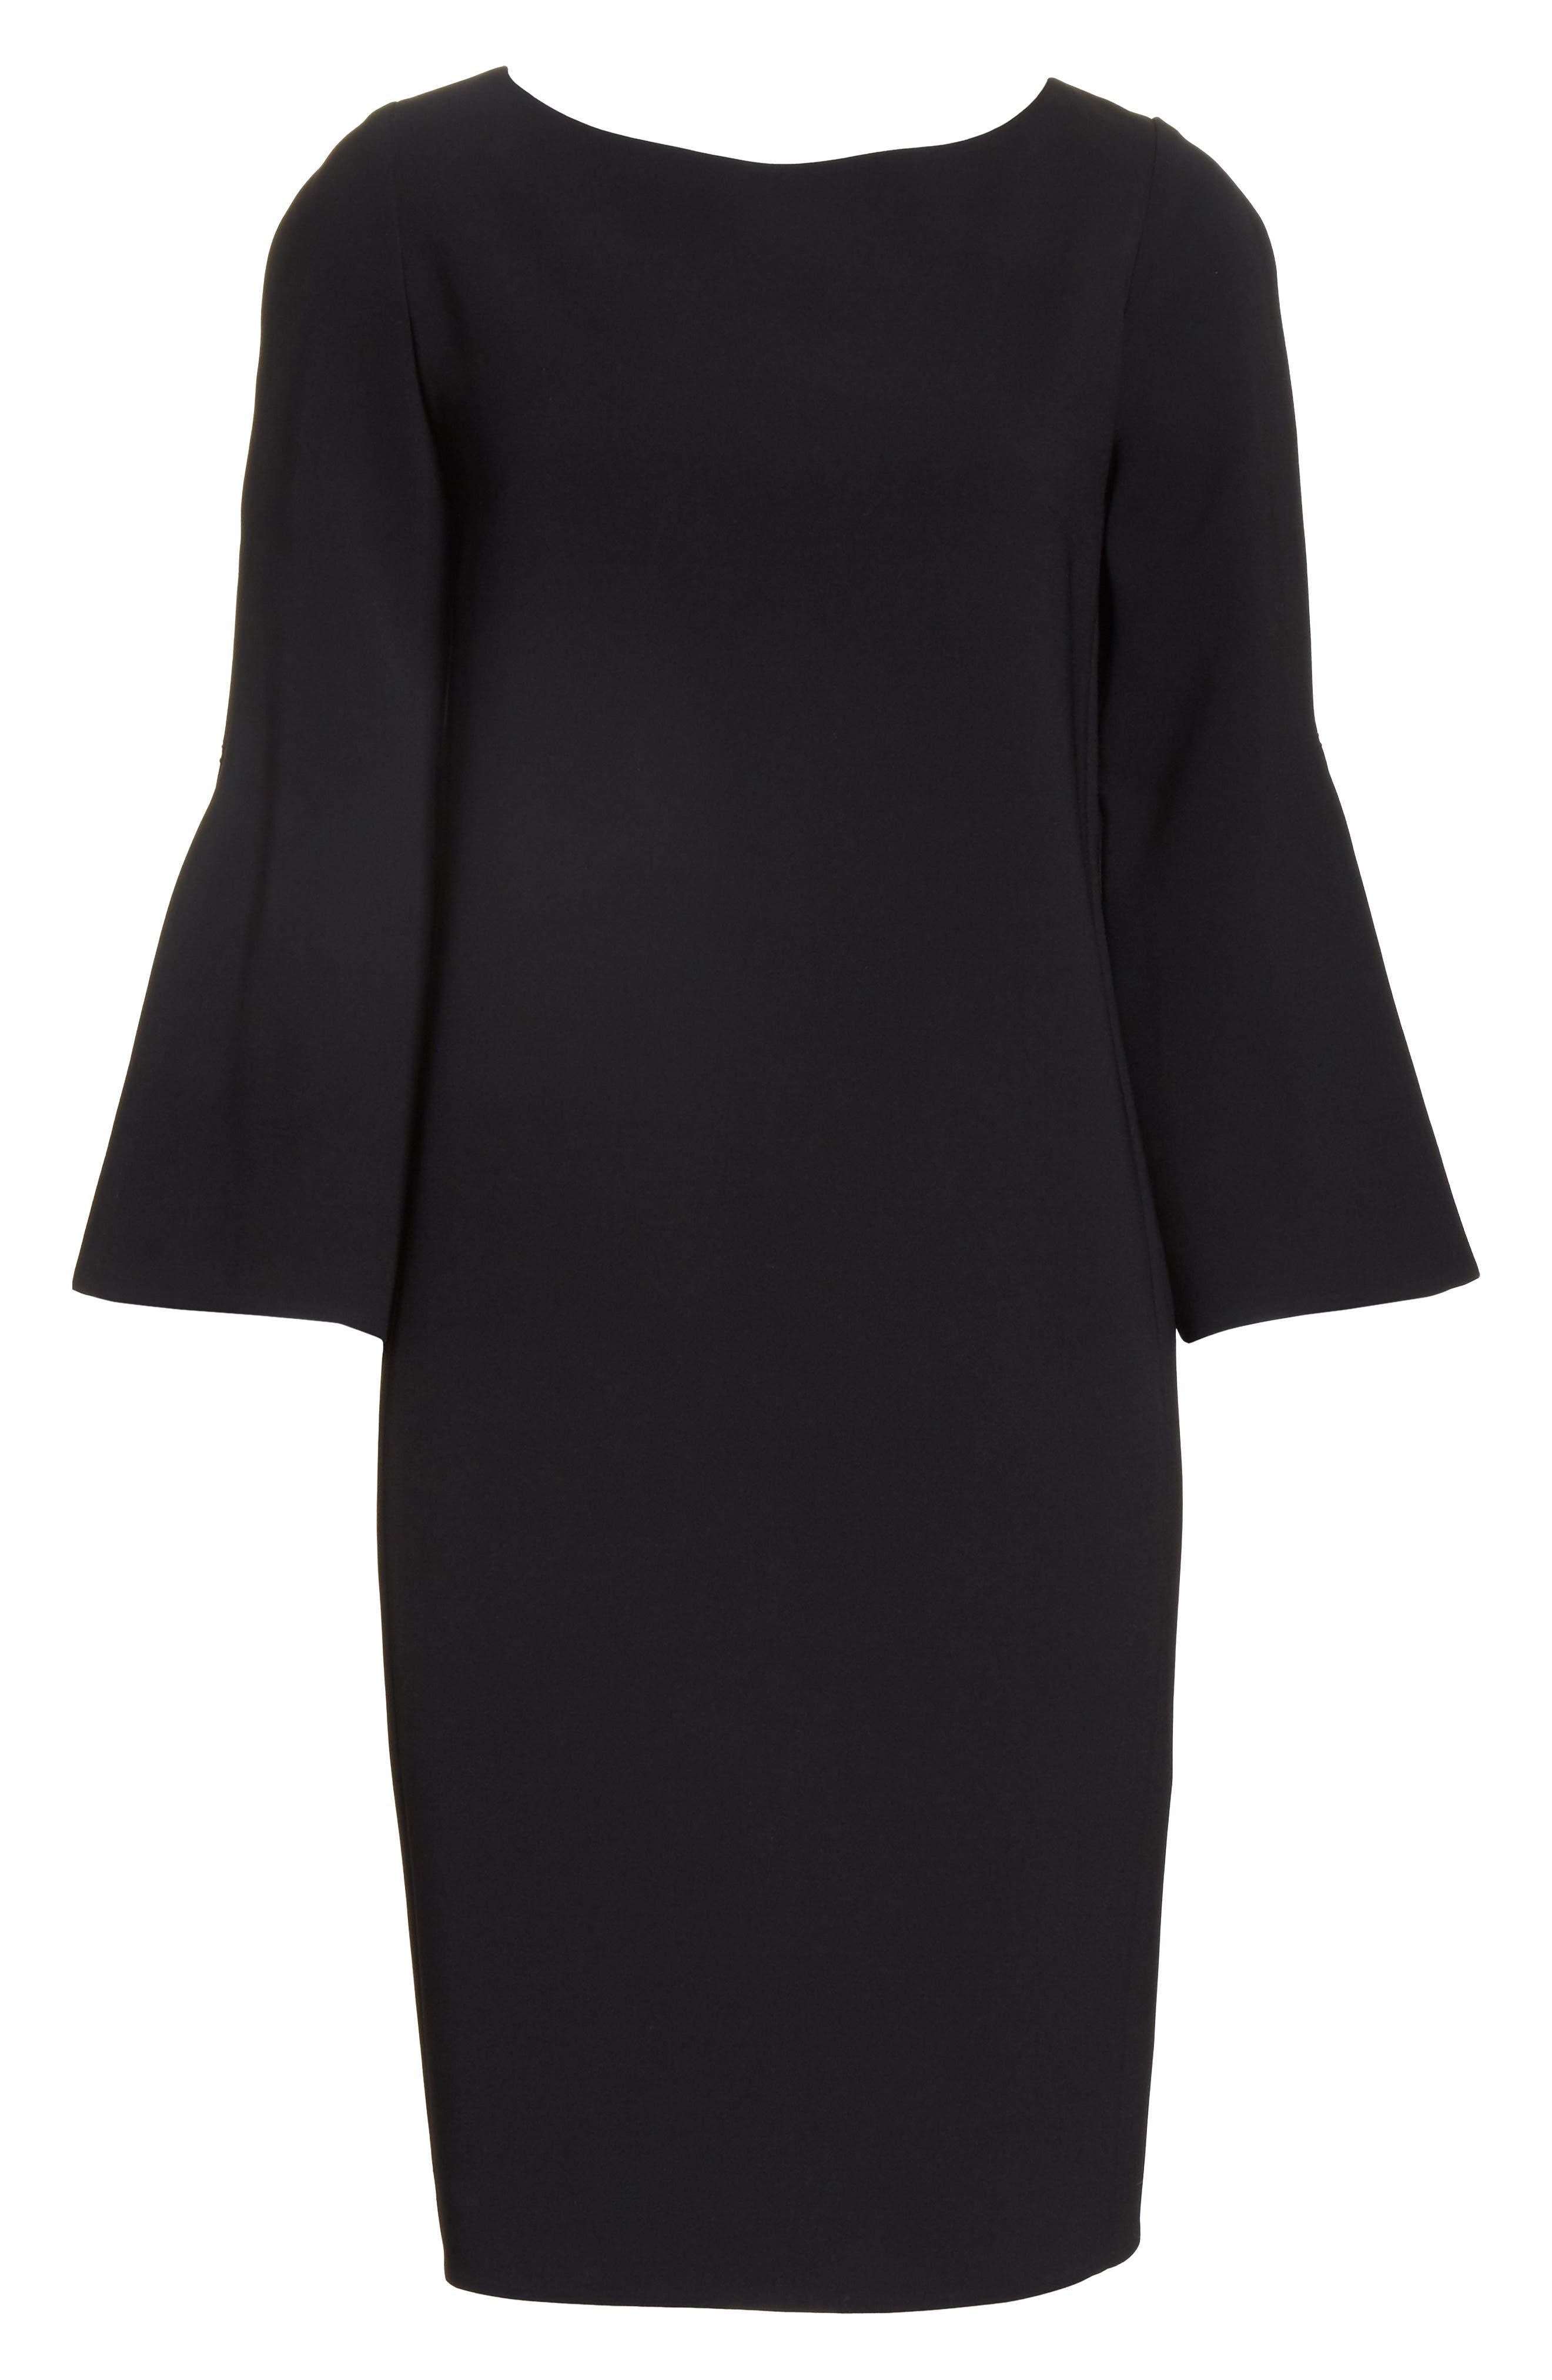 LAFAYETTE 148 NEW YORK,                             Candace Finesse Crepe Shift Dress,                             Alternate thumbnail 7, color,                             001